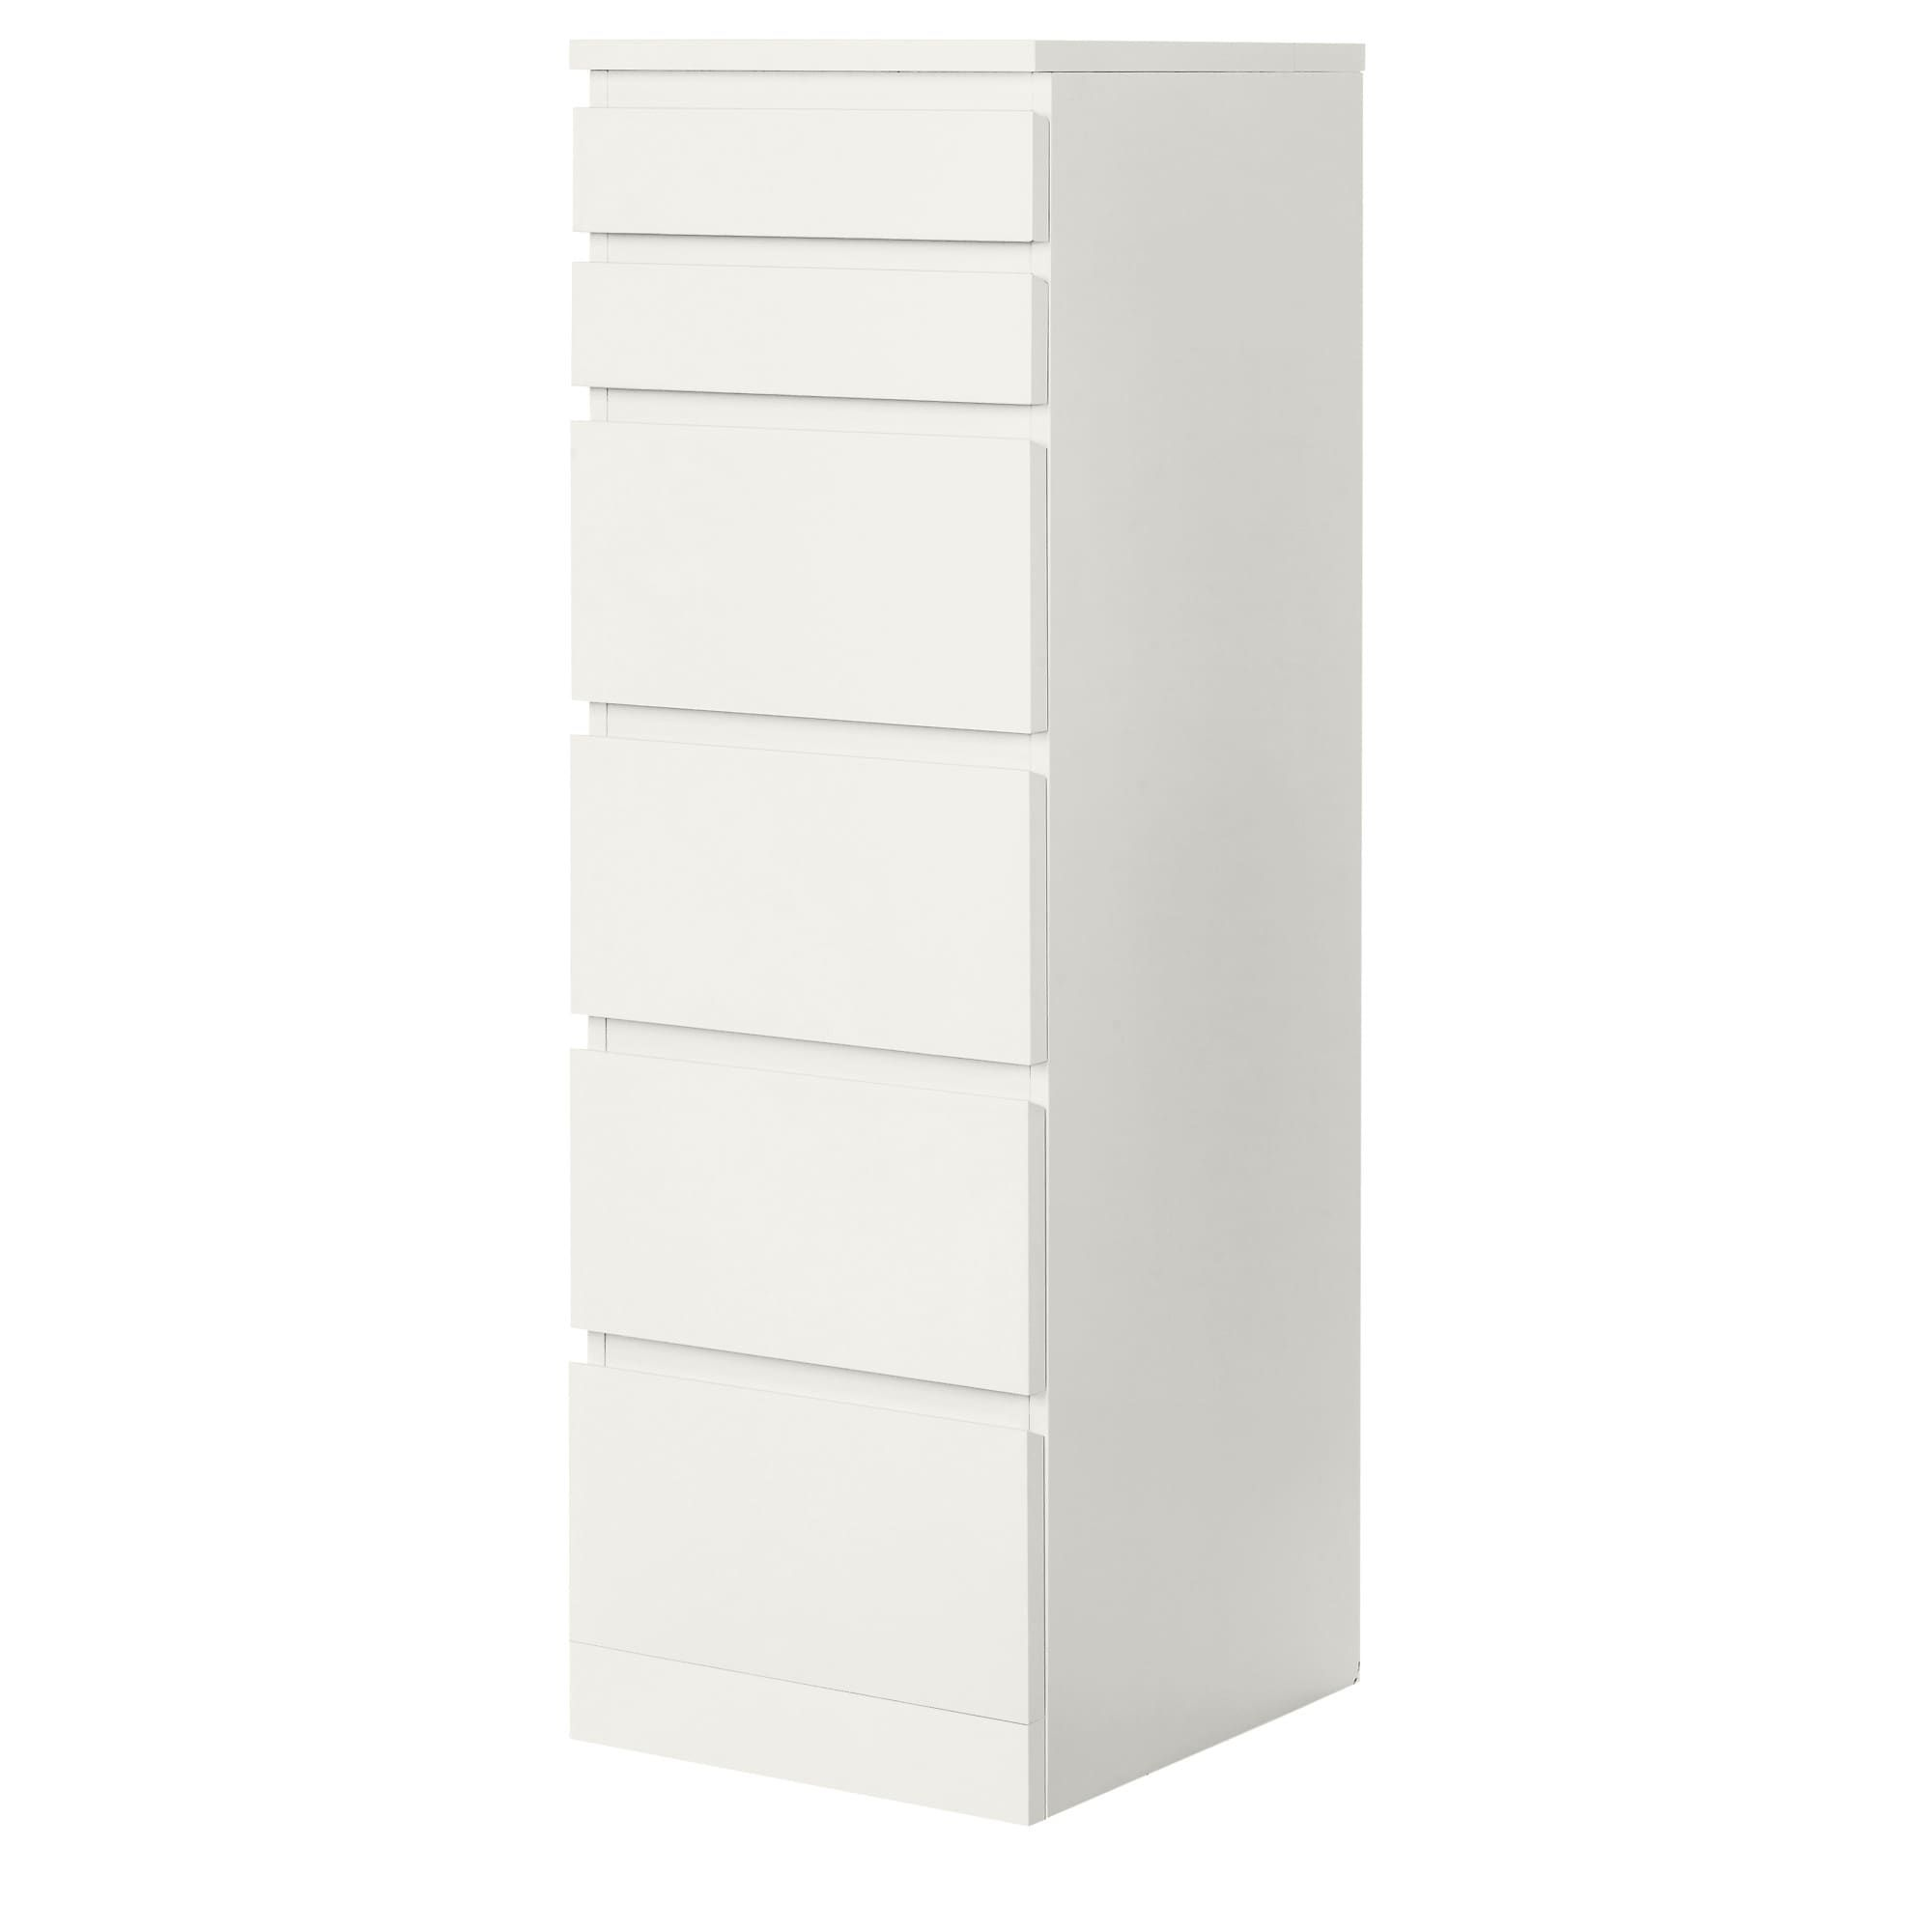 Best Malm Chest Of 6 Drawers White Mirror Glass 40X123 Cm 640 x 480